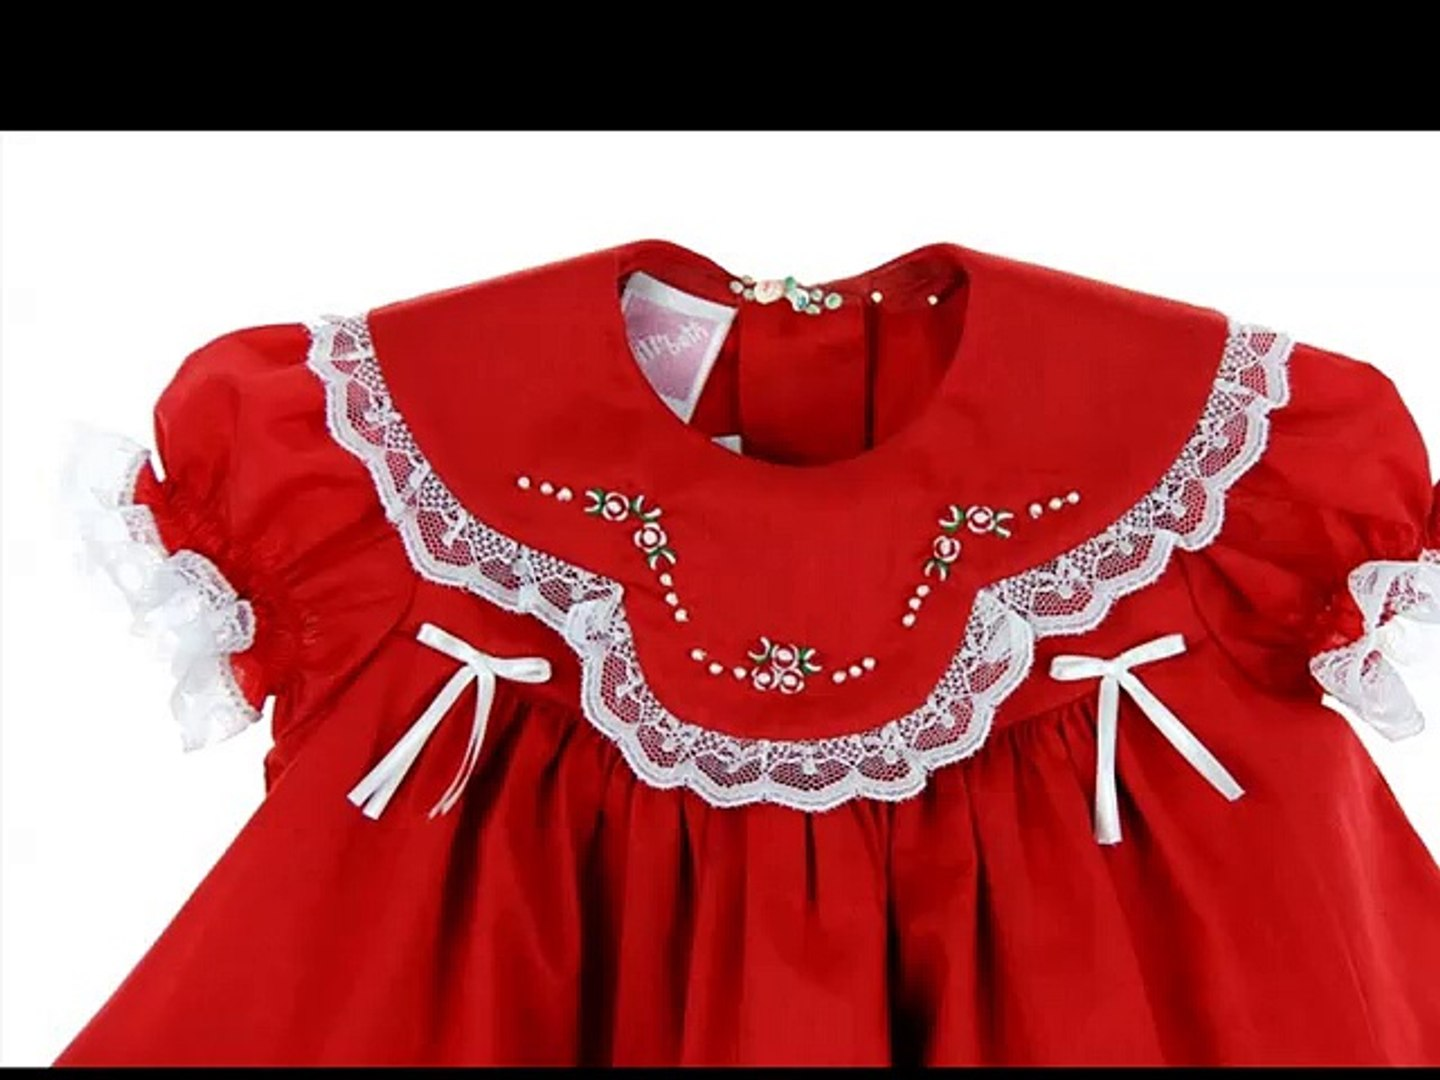 red baby dress - Red color pics ideas | cute dress collection of pics